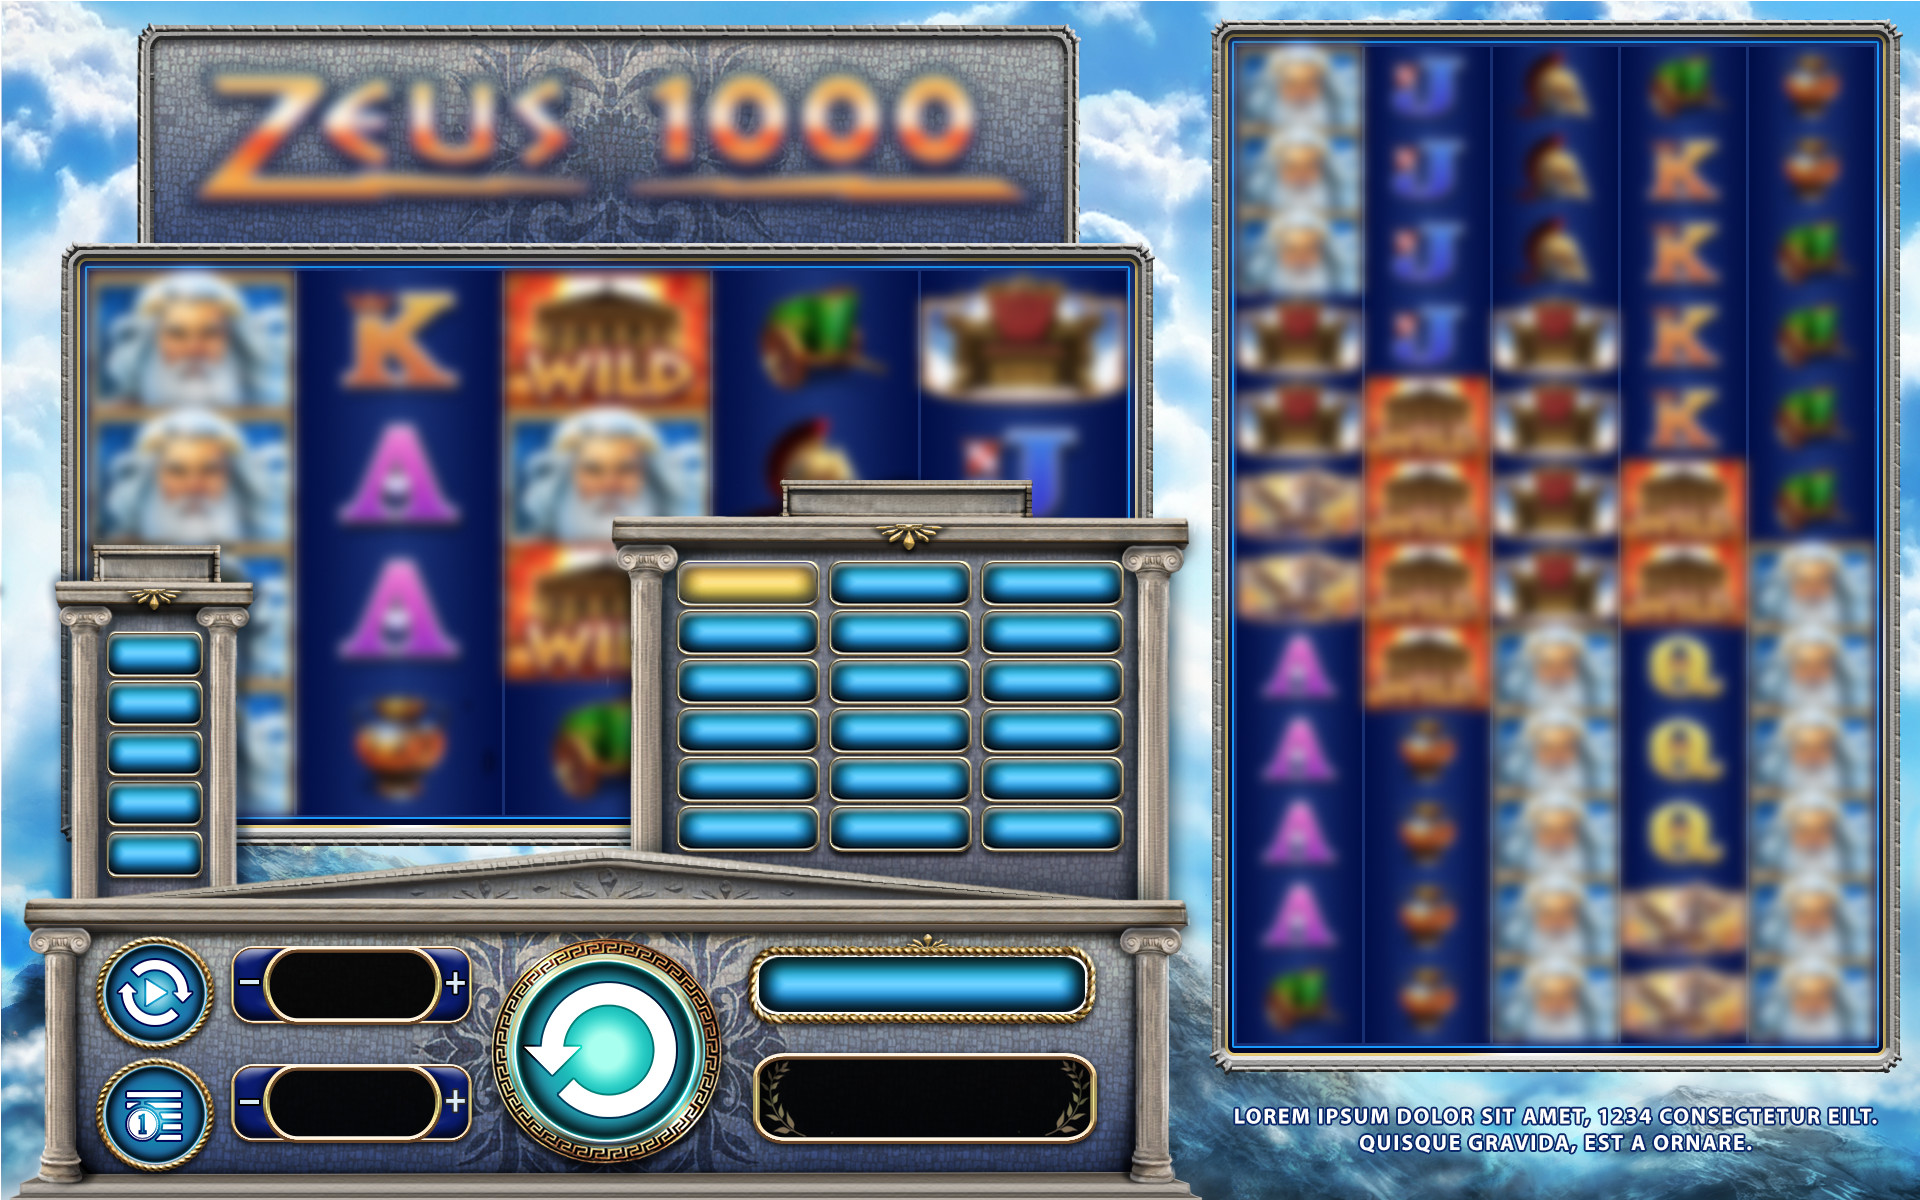 UI Art and Loadscreen for Zeus 1000